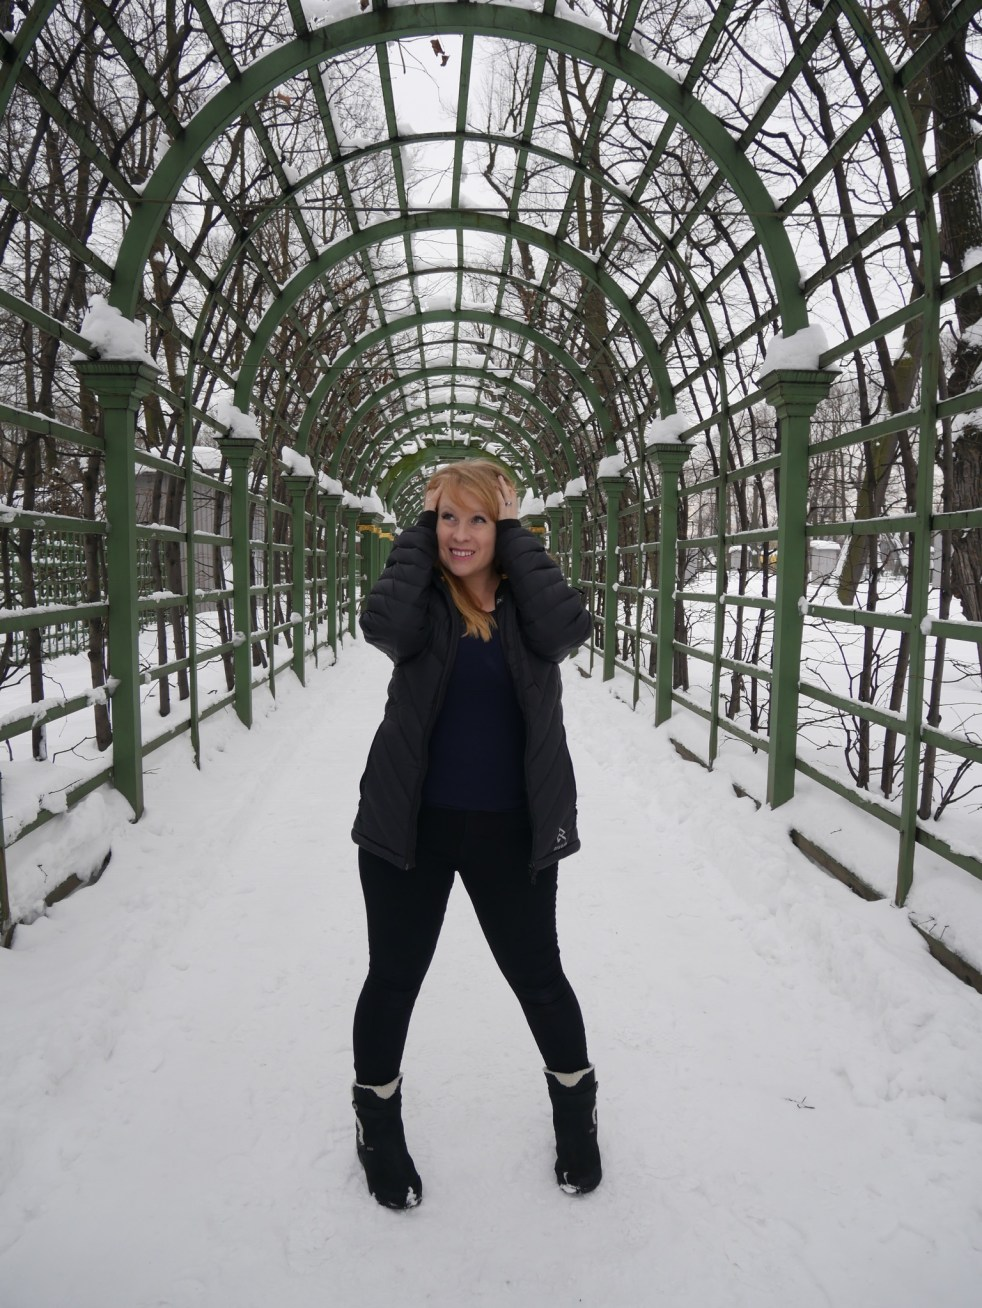 Rosie standing in snow under an arbor wearing a black Ravean Down X Heated Jacket